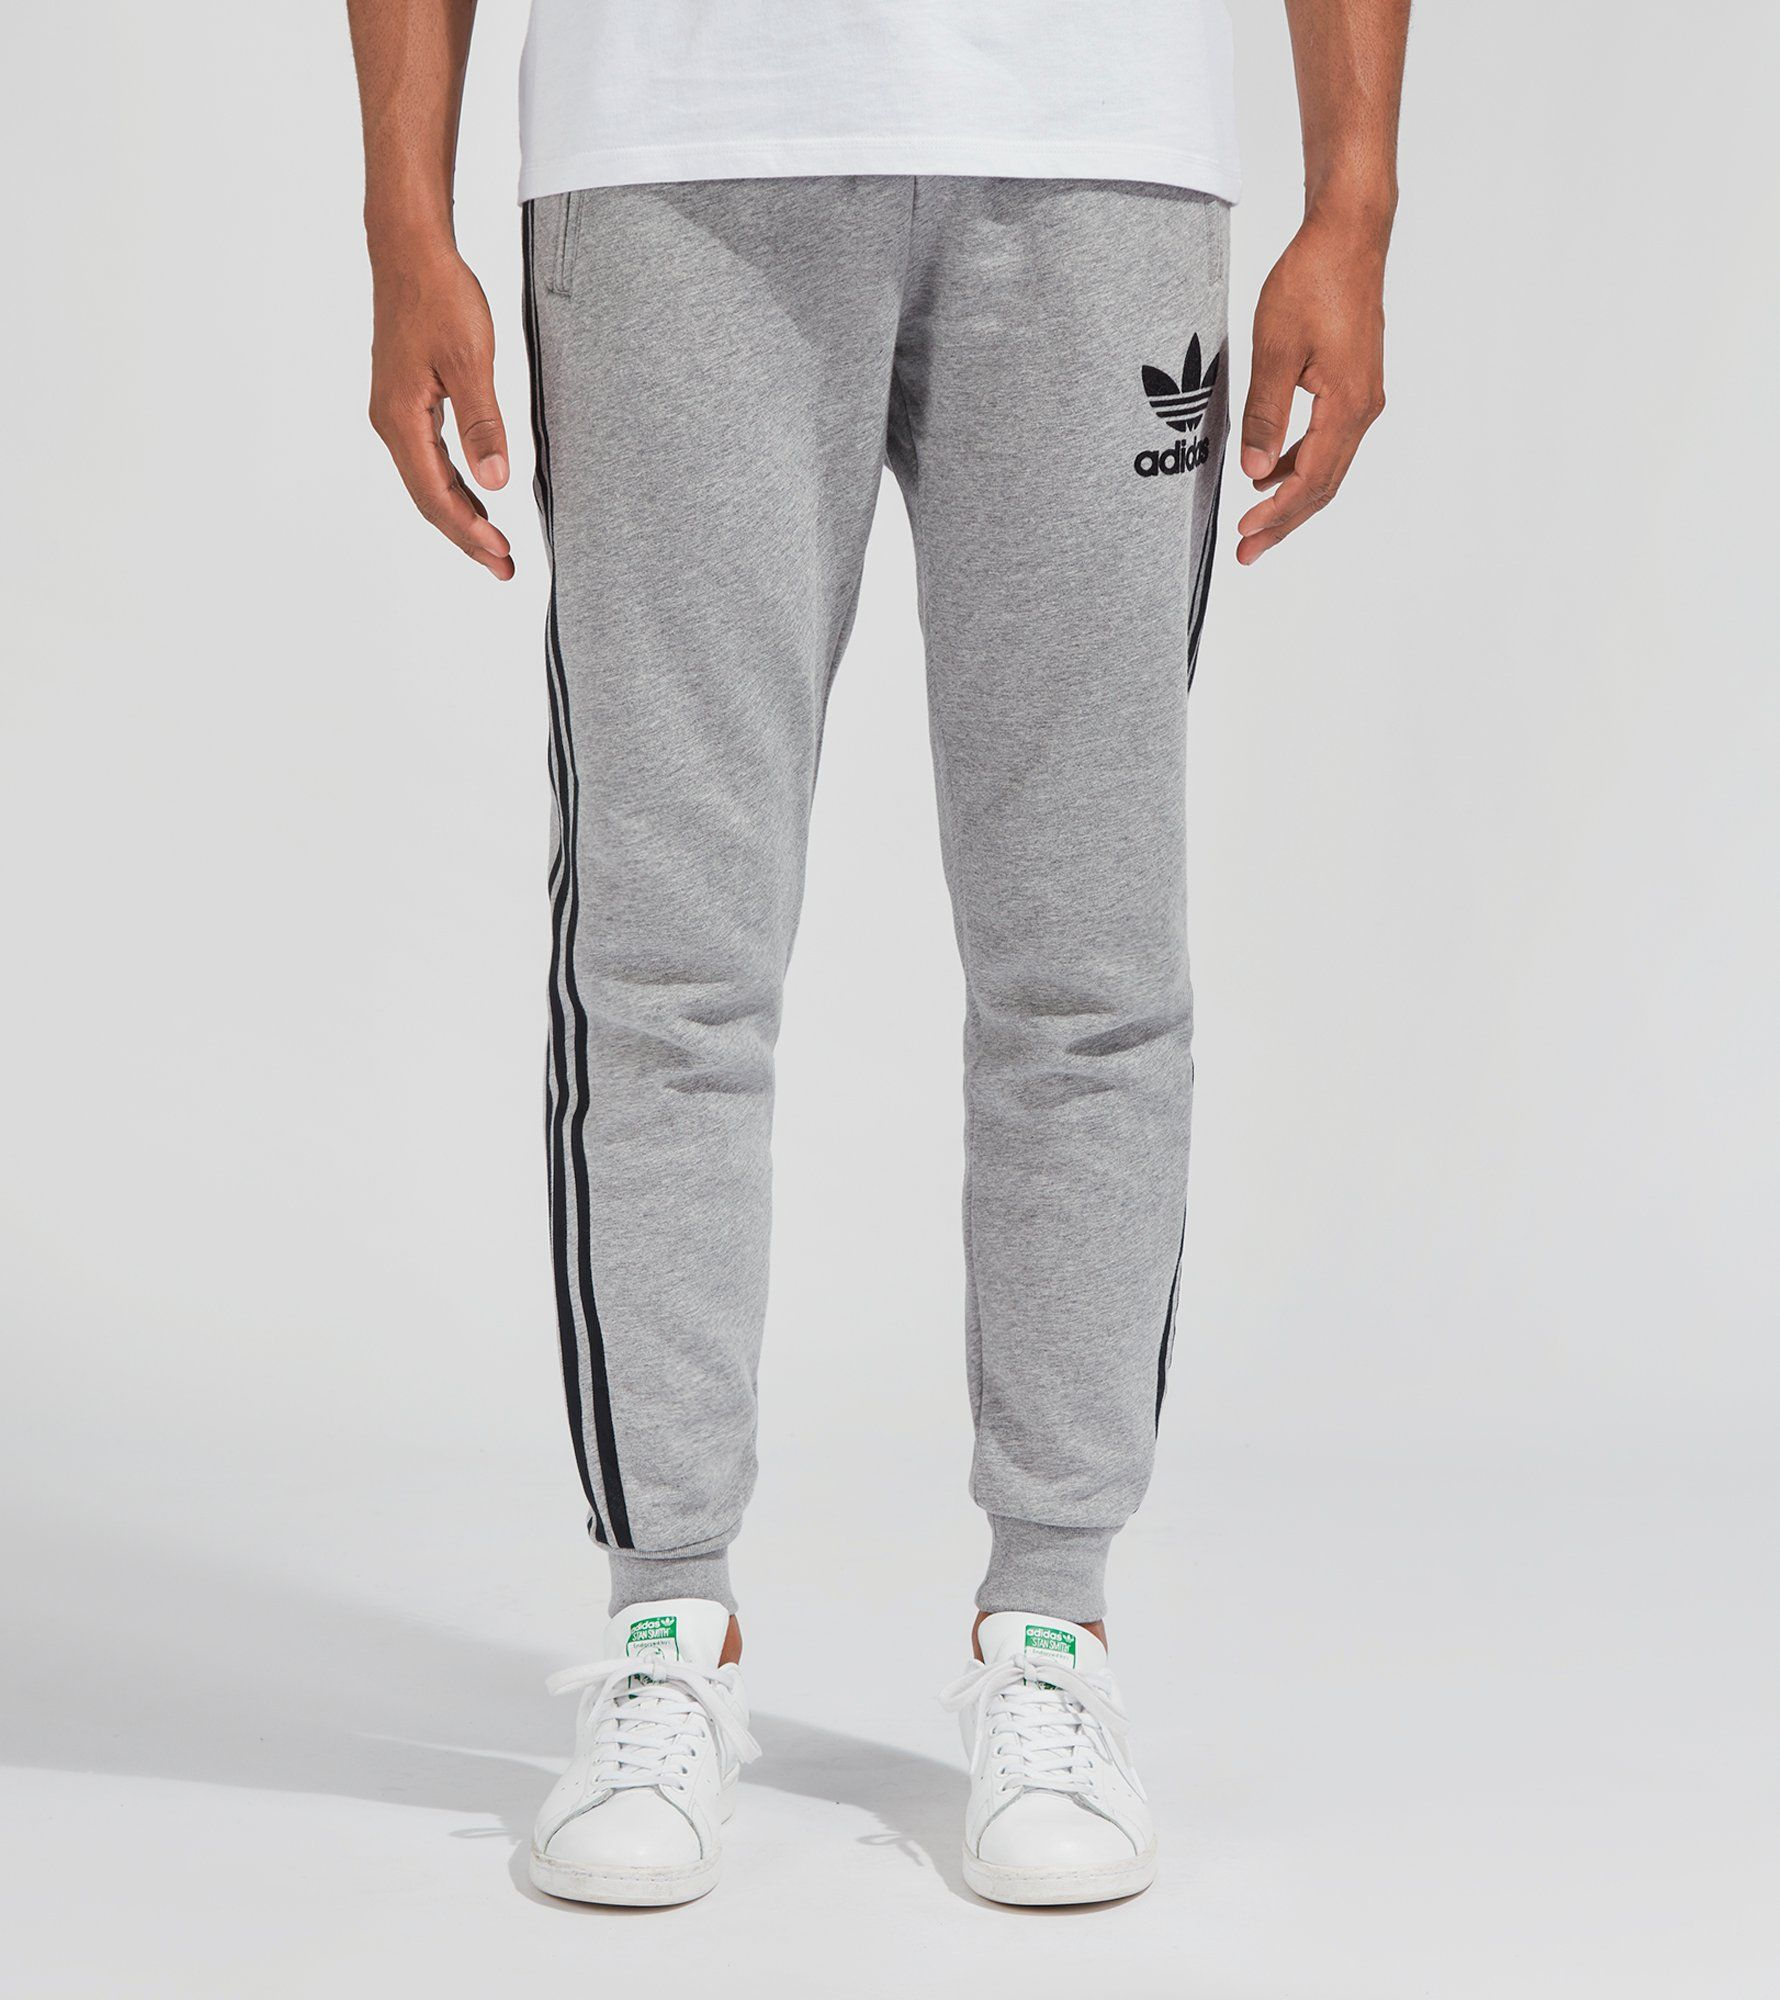 085f69561 adidas Originals Adicolor Slim Cuffed Track Pants | Size?